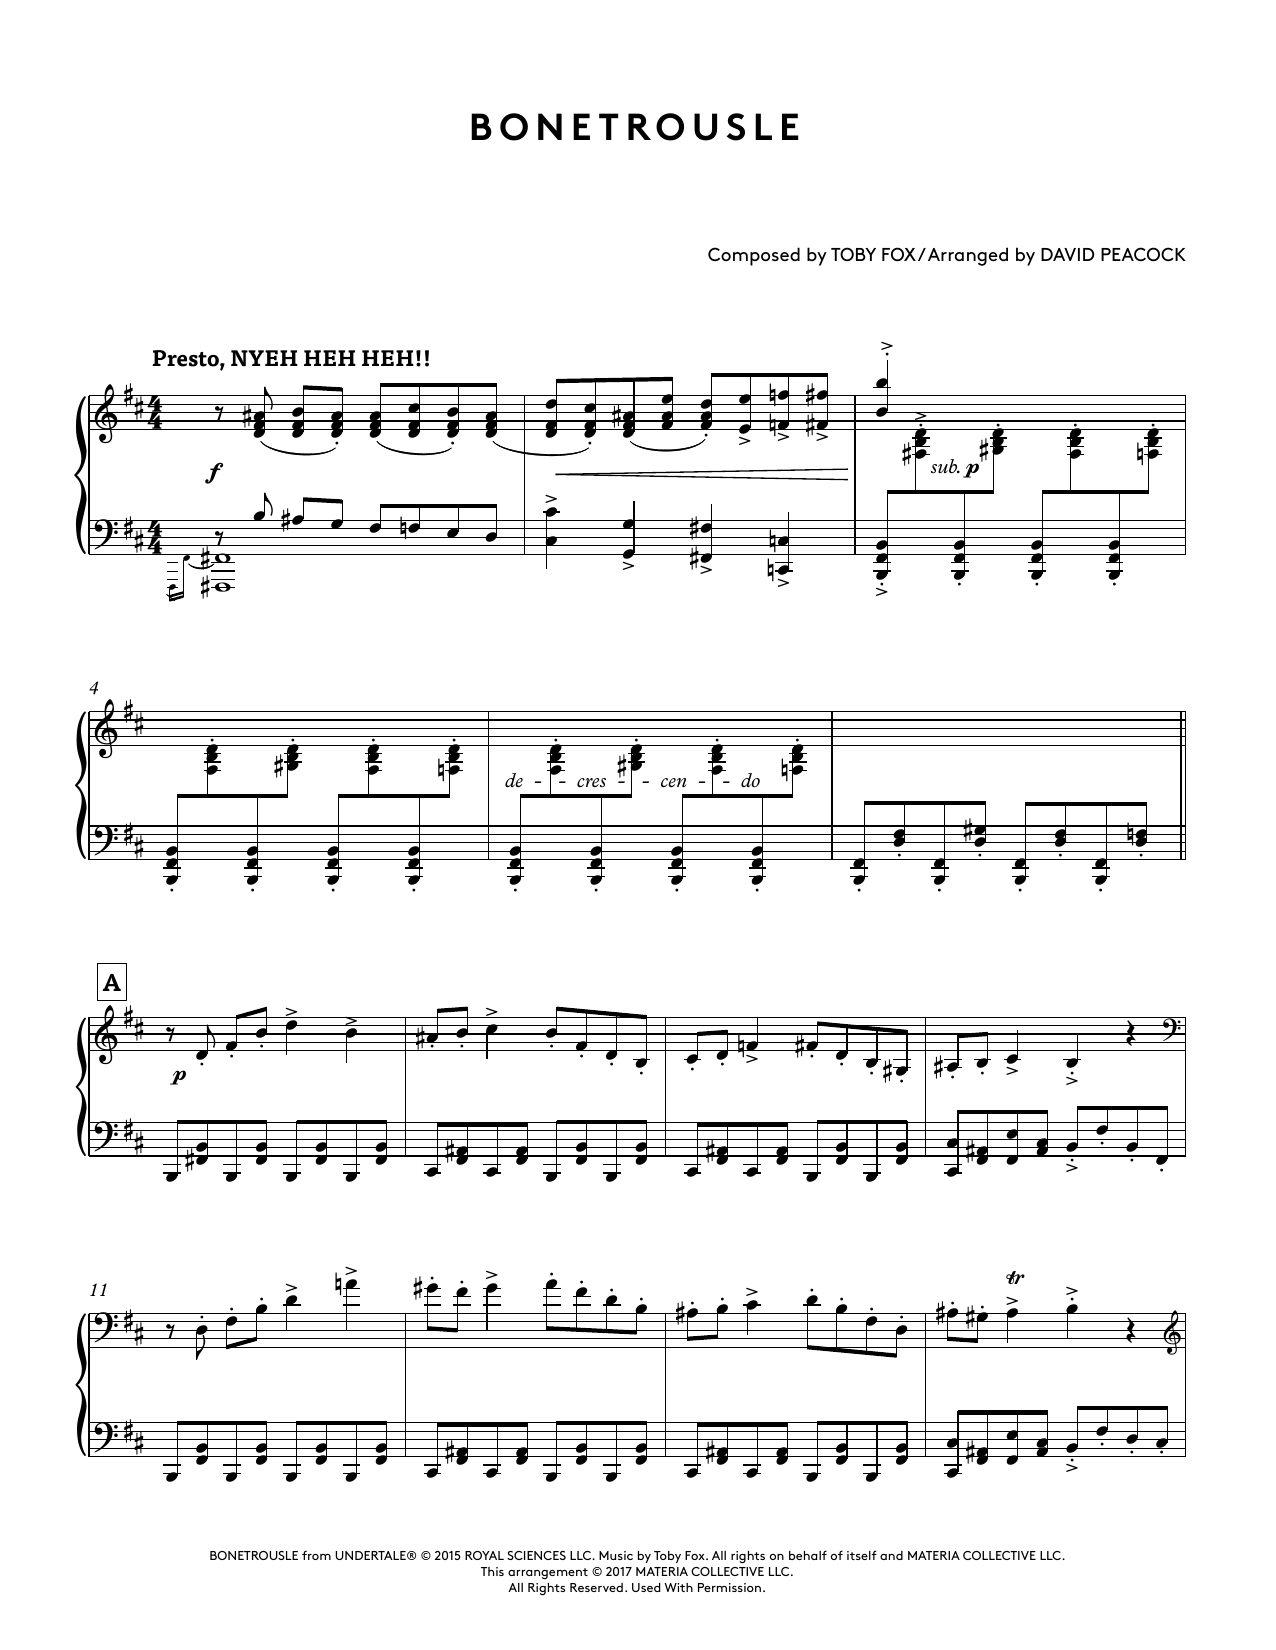 Bonetrousle (from Undertale Piano Collections) (arr  David Peacock) by Toby  Fox Piano Solo Digital Sheet Music